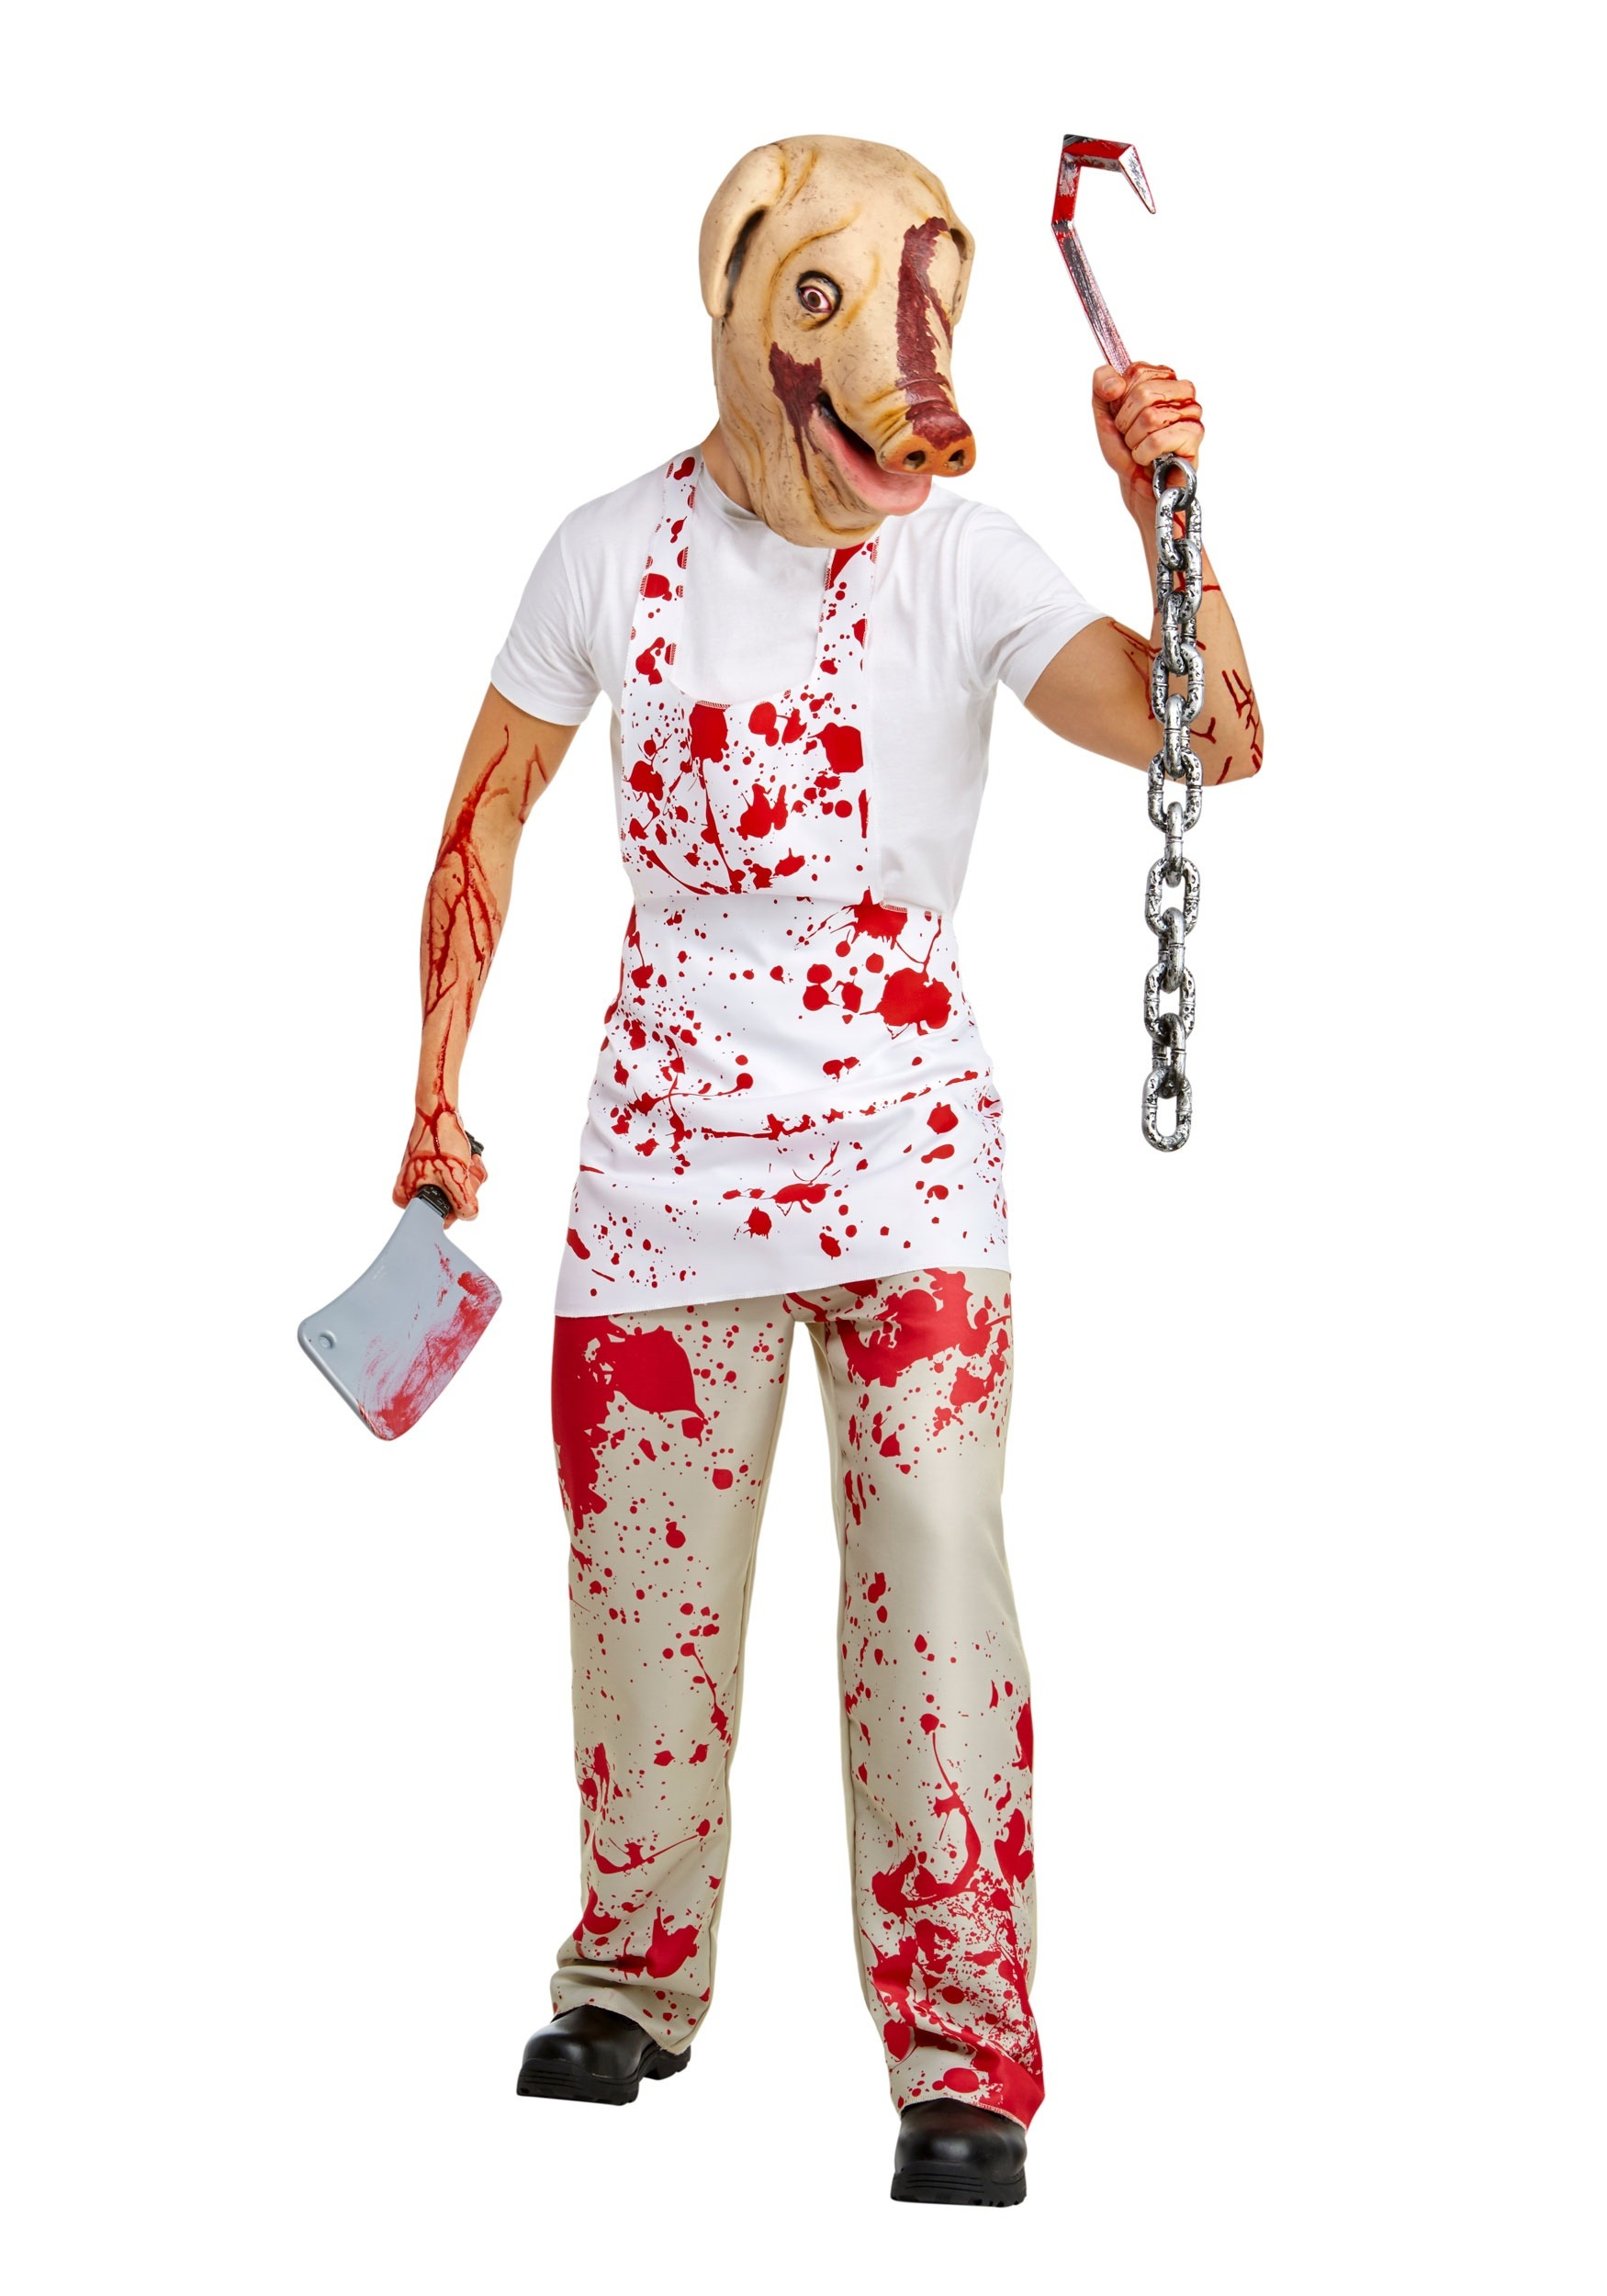 Adult Piggy Man Costume from American Horror Story